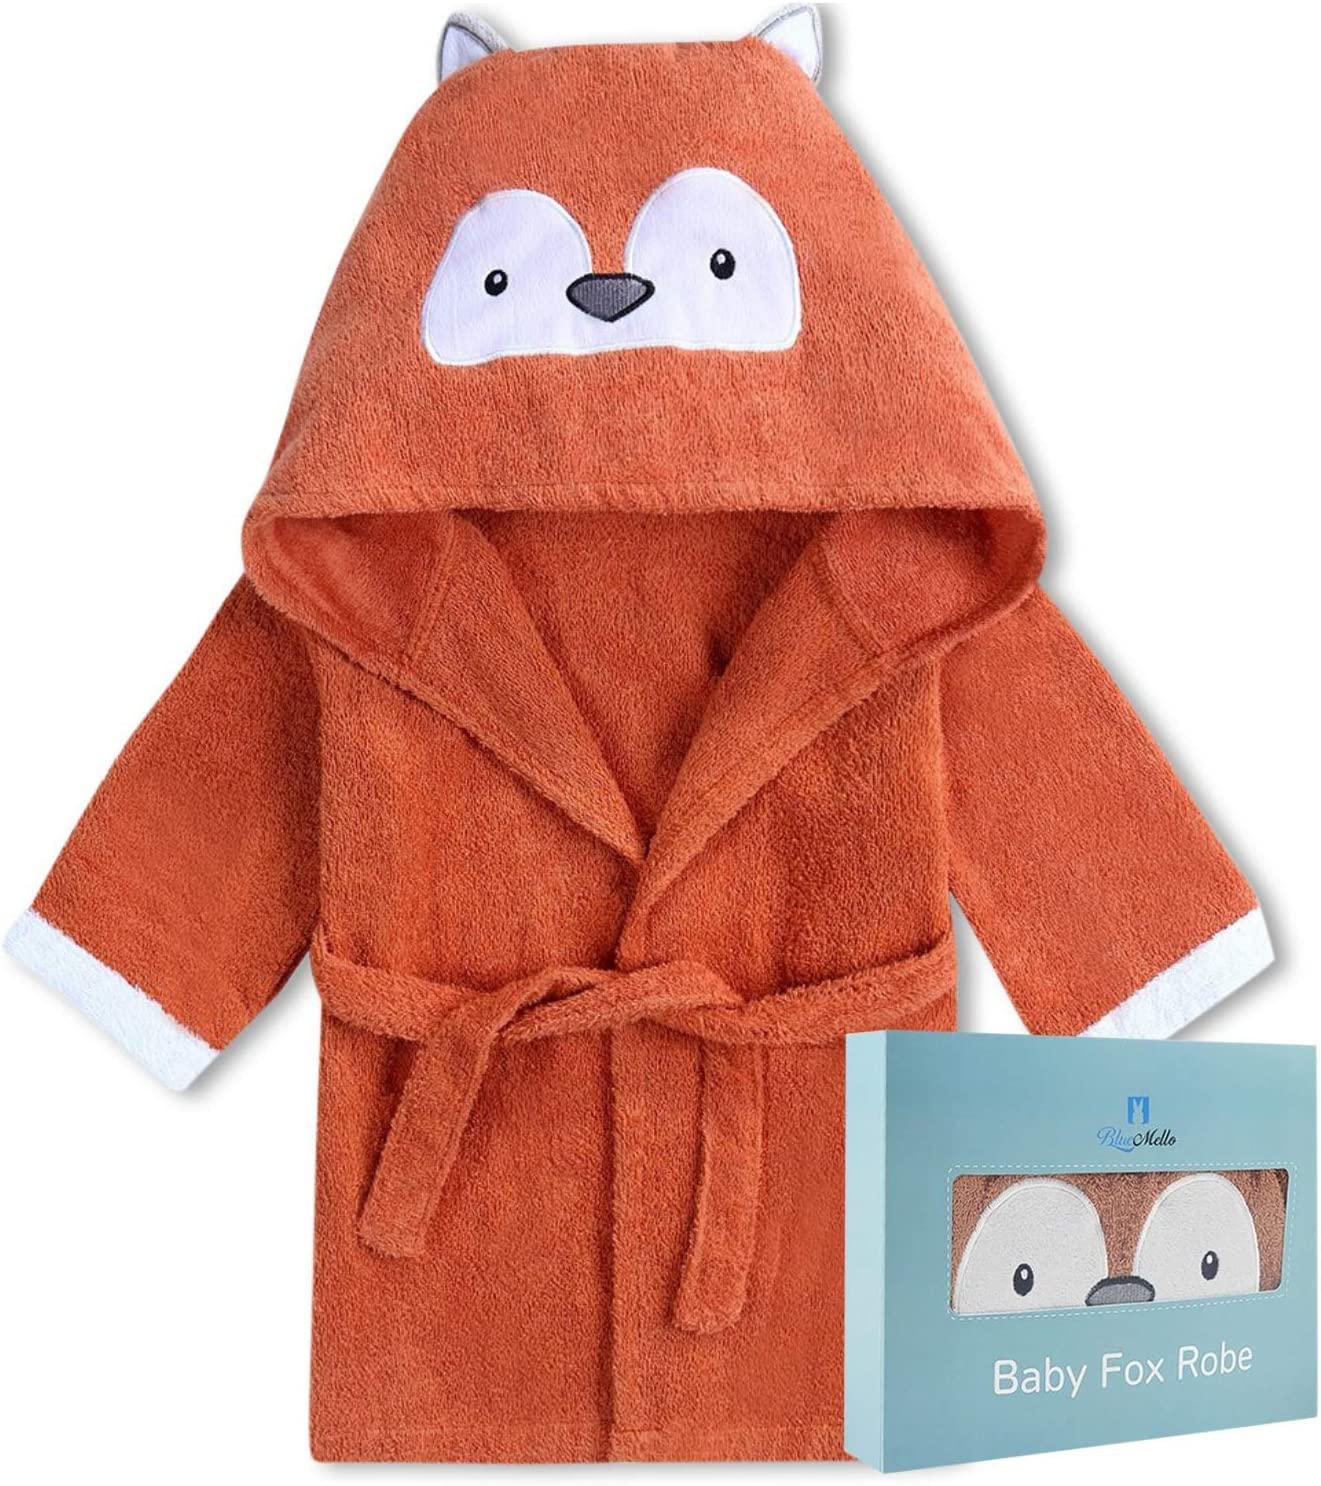 BlueMello Baby Fox Bathrobe | Ultra-Soft Hooded Robe for Toddlers 12-24 Months | Essential Bath Towel for Infants | Ideal for Baby Boy Accessories and Newborn Registry | Perfect Baby Girl Shower Gift